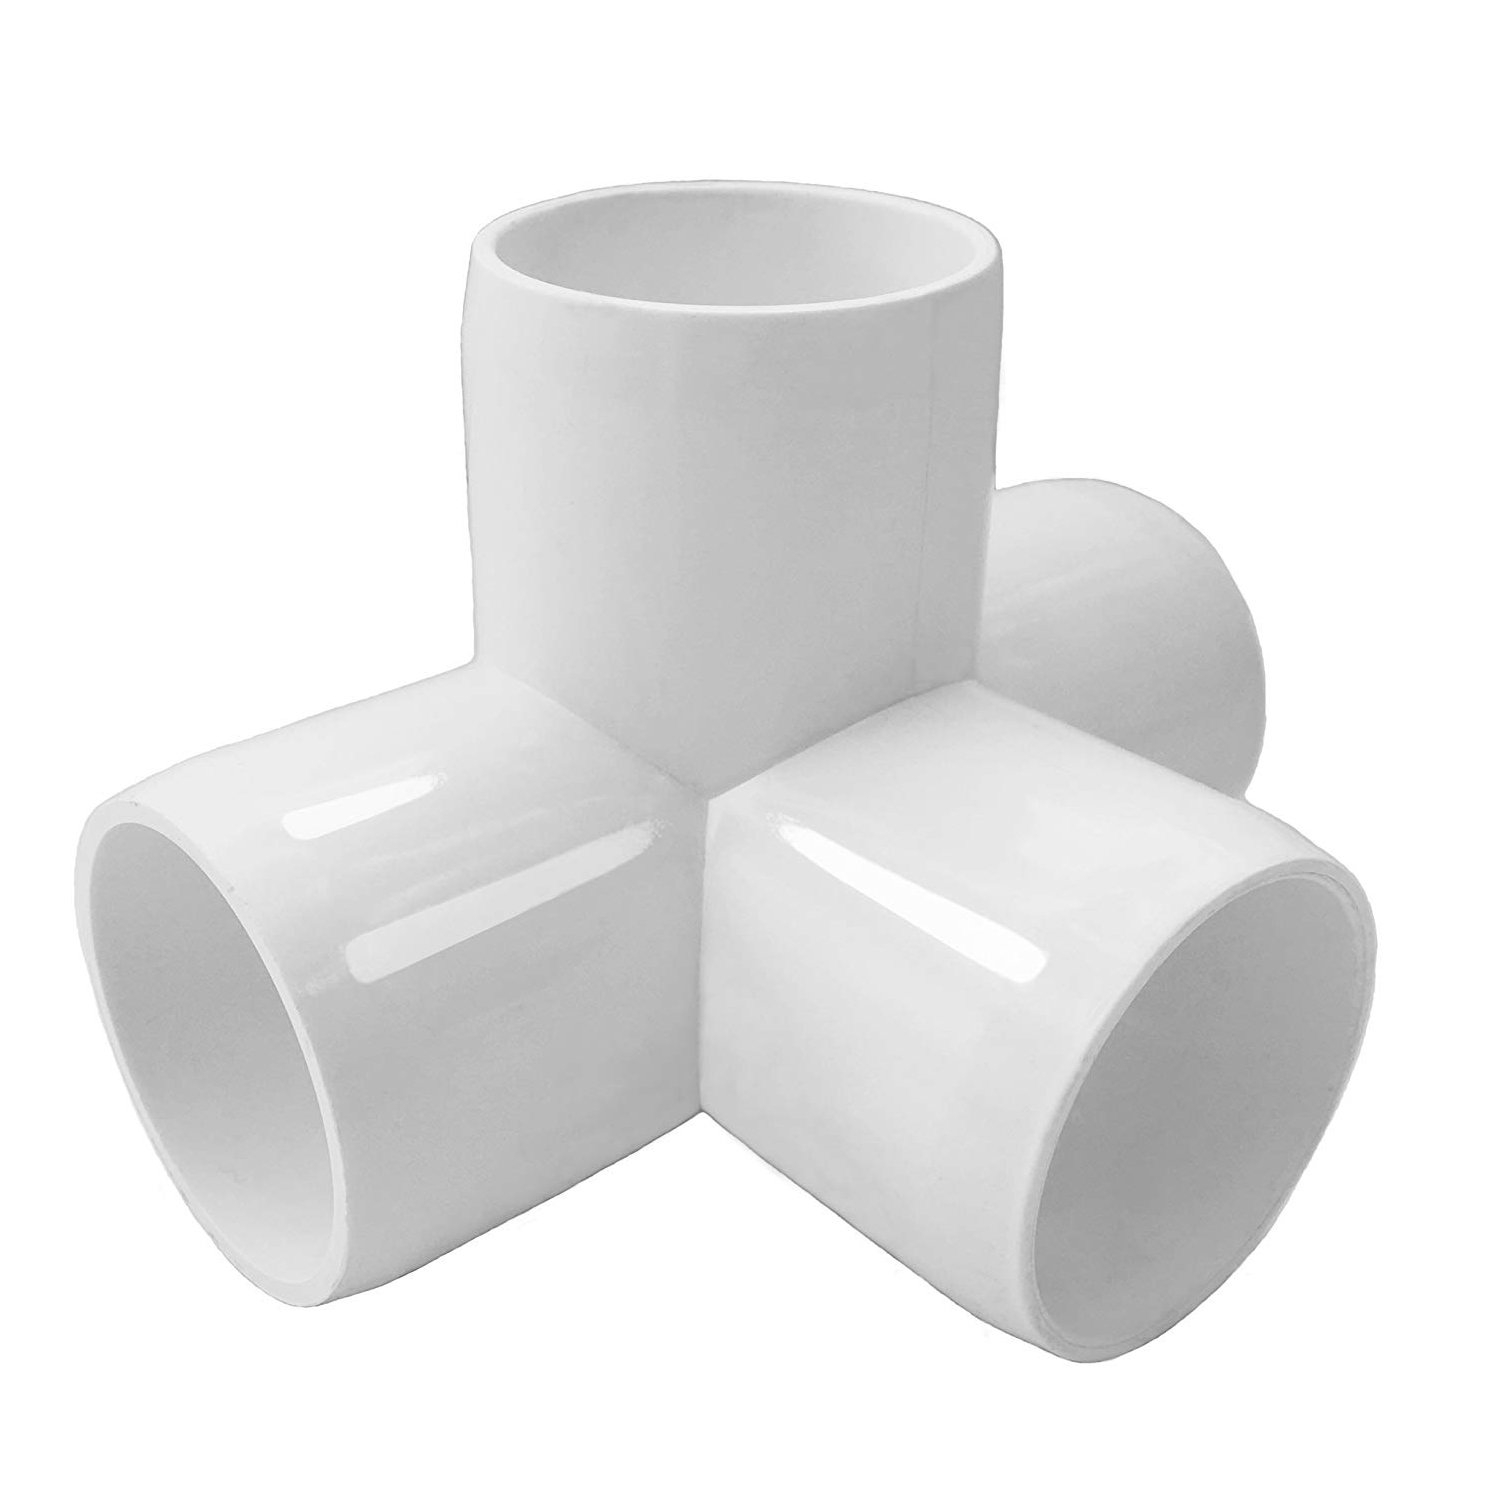 4 Way Tee PVC Fitting 3/4 in Tee PVC Fitting Elbow Build Heavy Duty PVC Furniture Grade SCH 40 PVC 0.75''/1'' Elbow Fittings For One Inch Size Pipe - White (Pack of 10) (4Way1in)